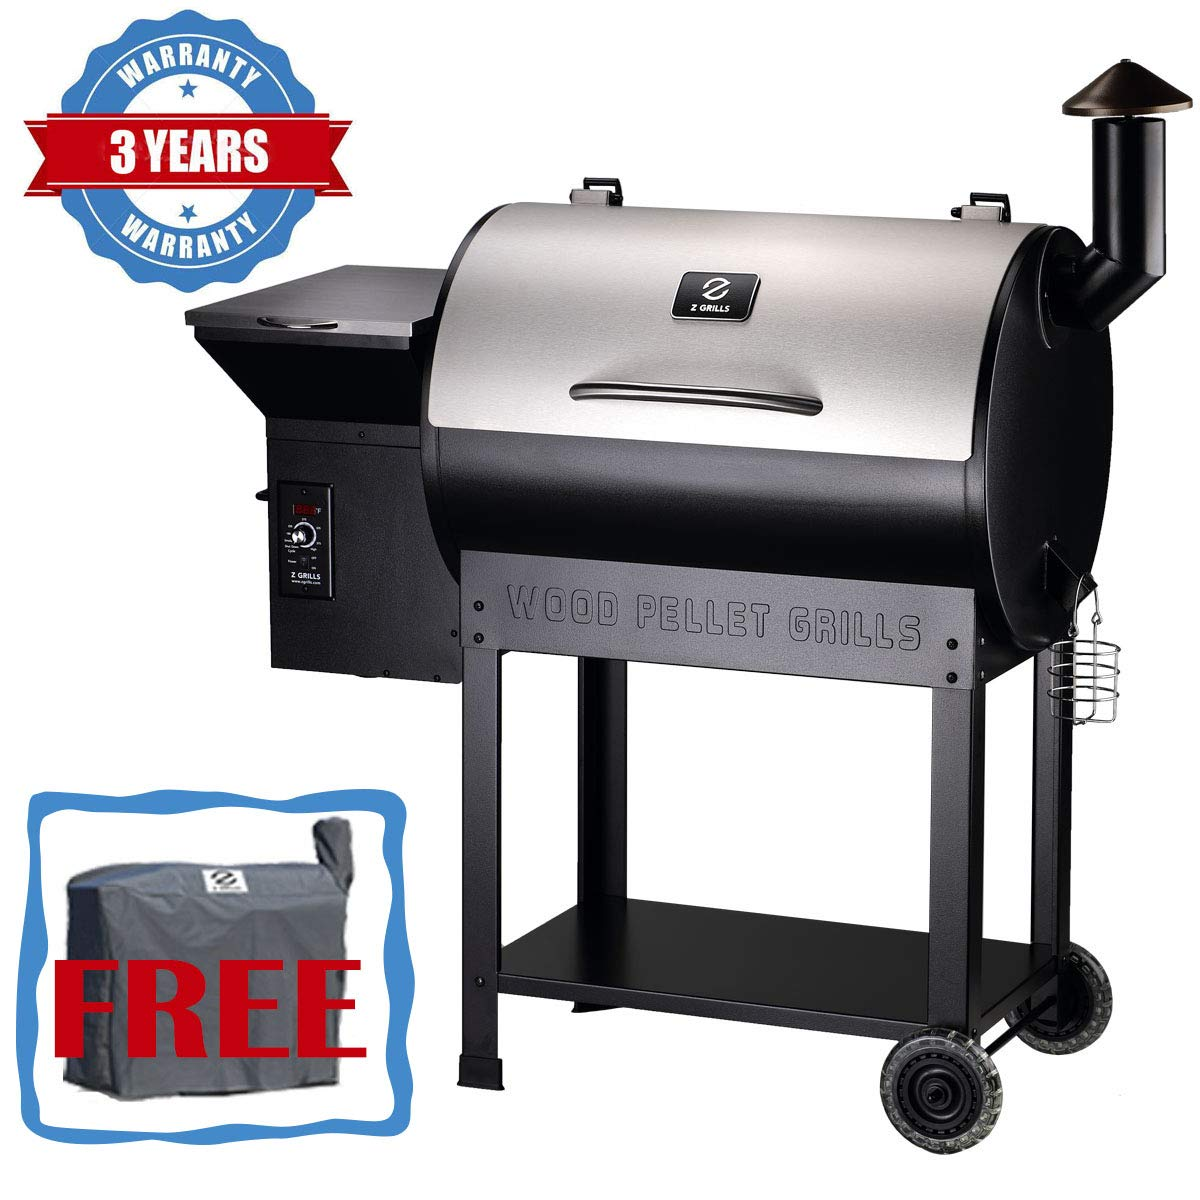 Z GRILLS Wood Pellet Grill & Smoker with Newest Updated Digital Controls, 700 sq. in Grill Master Essential Barbecue Grill by Z GRILLS